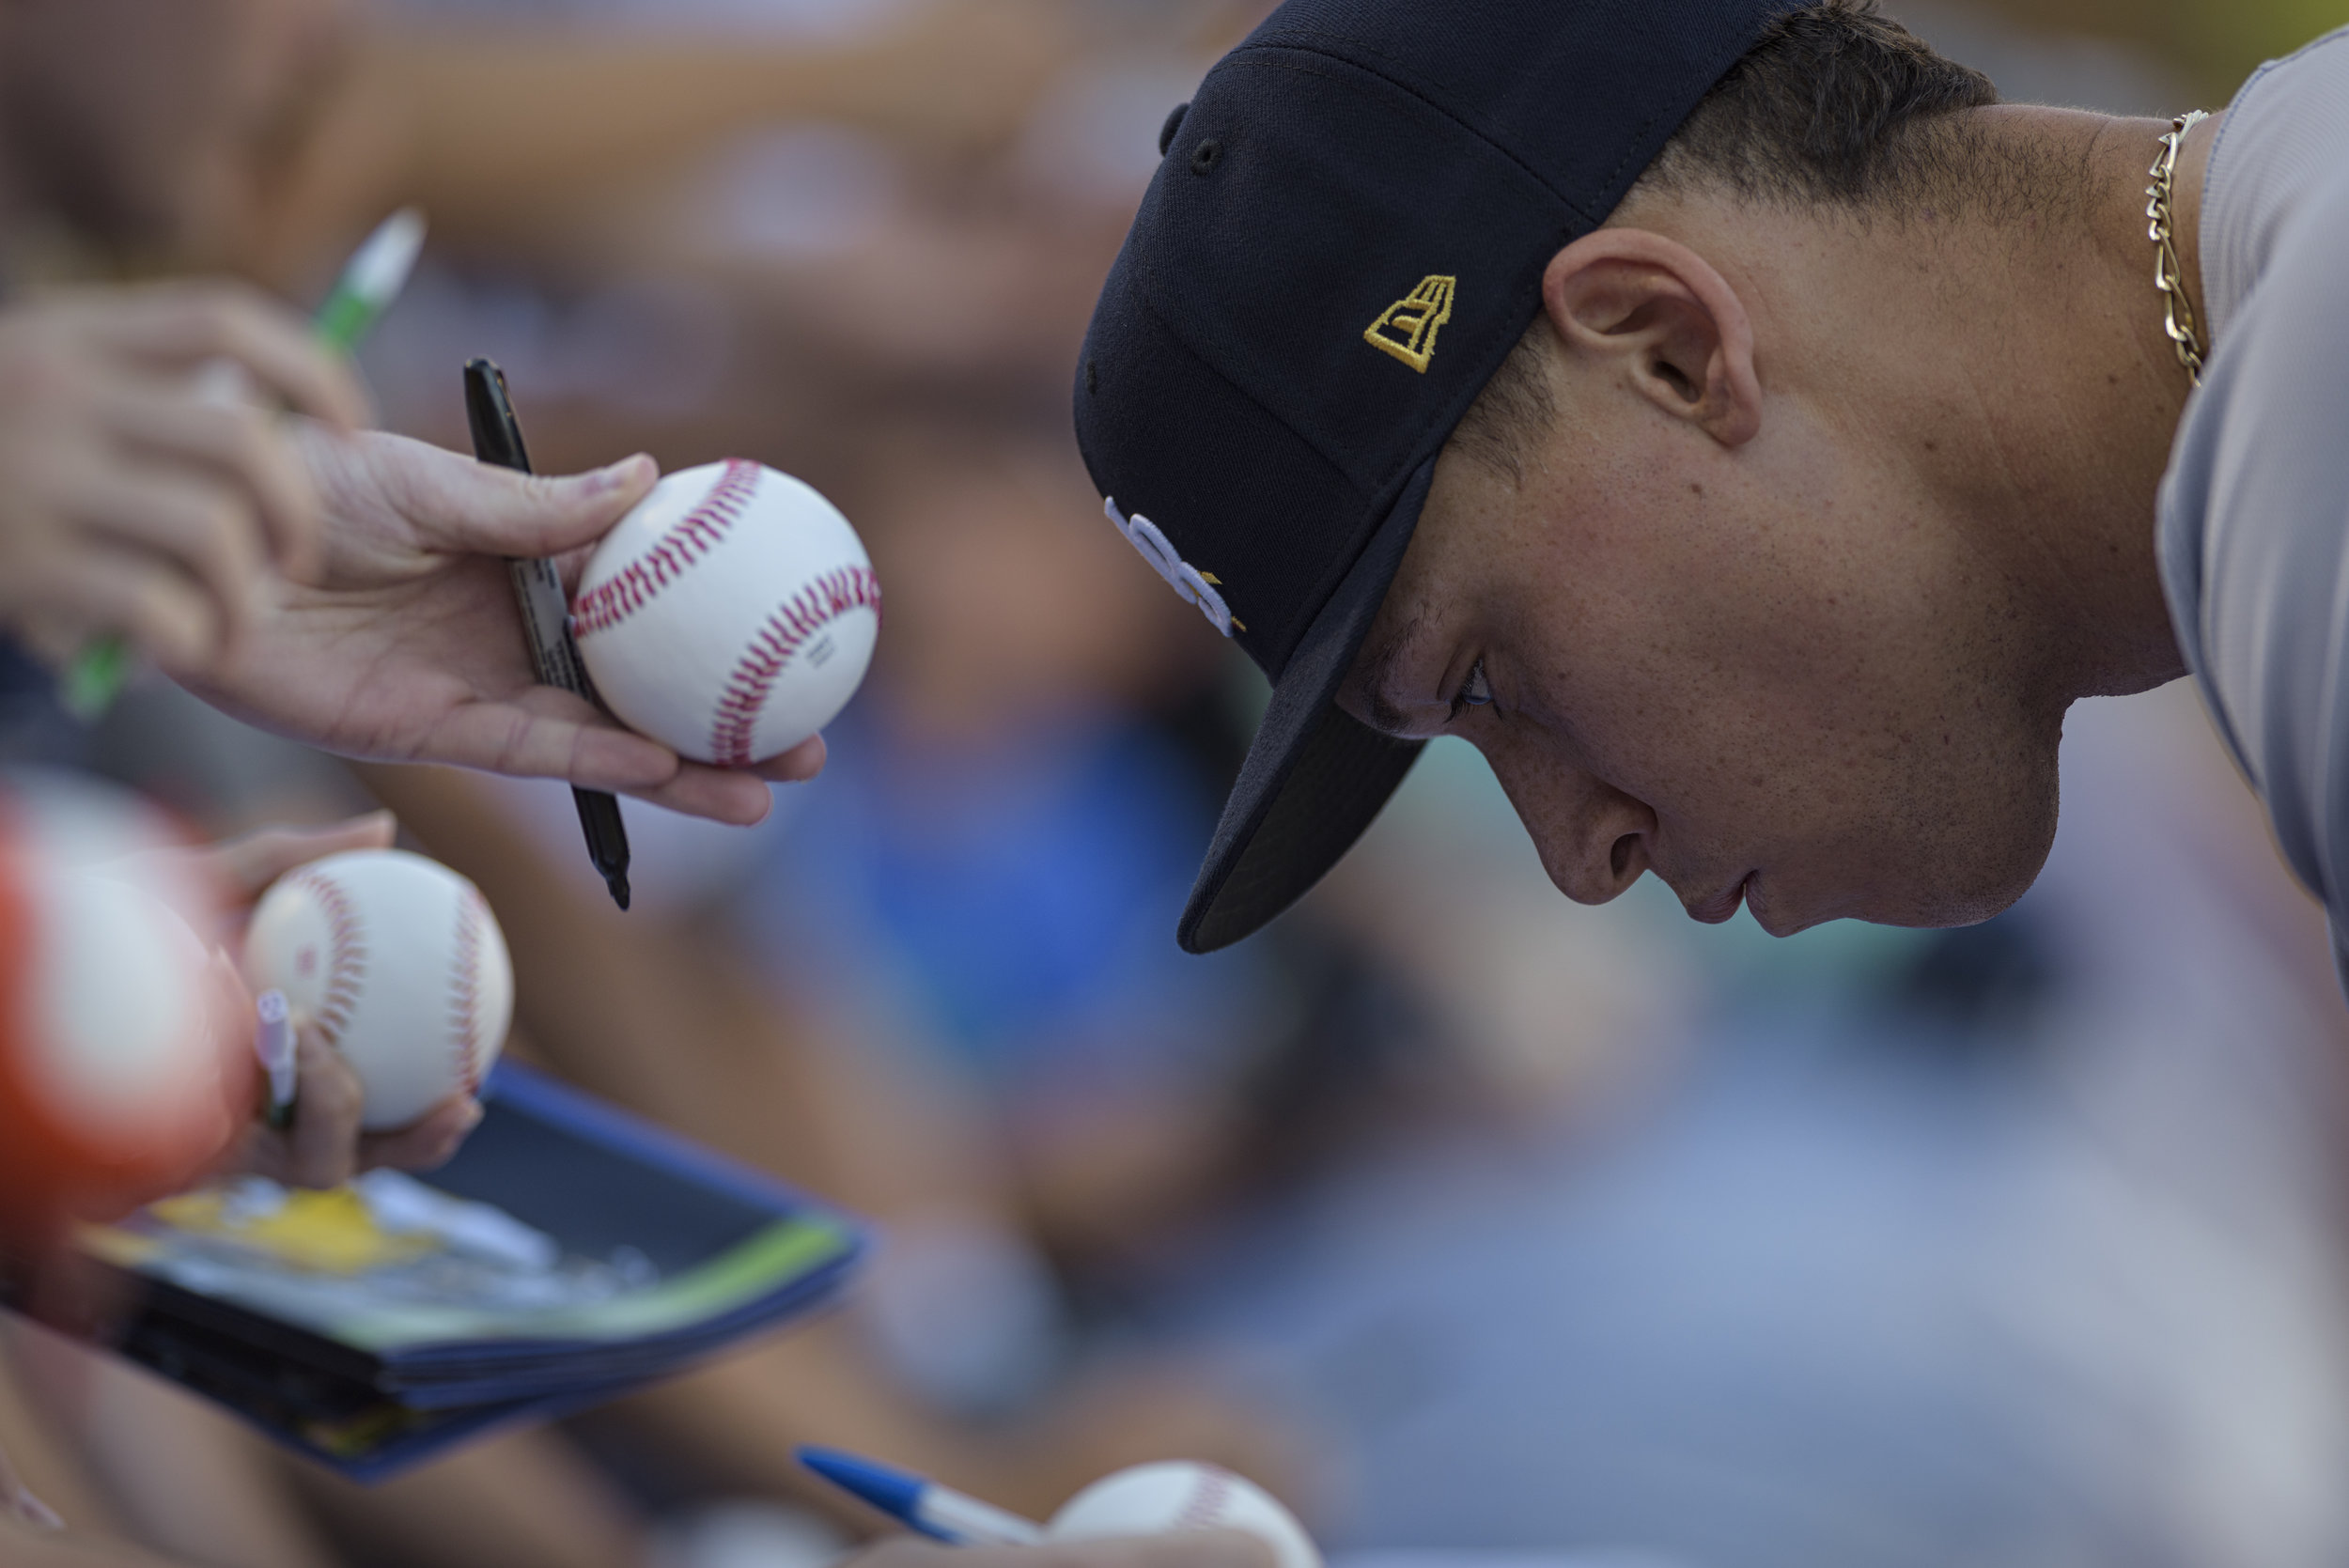 New York Yankees outfielder Aaron Judge signs autographs after batting practice with the Wilkes-Barre RailRiders, the Yankees' Triple-A affiliate, on June 14, 2019 at Durham Bulls Athletic Park in Durham, NC. Judge was playing with the RailRiders on a rehab assignment.